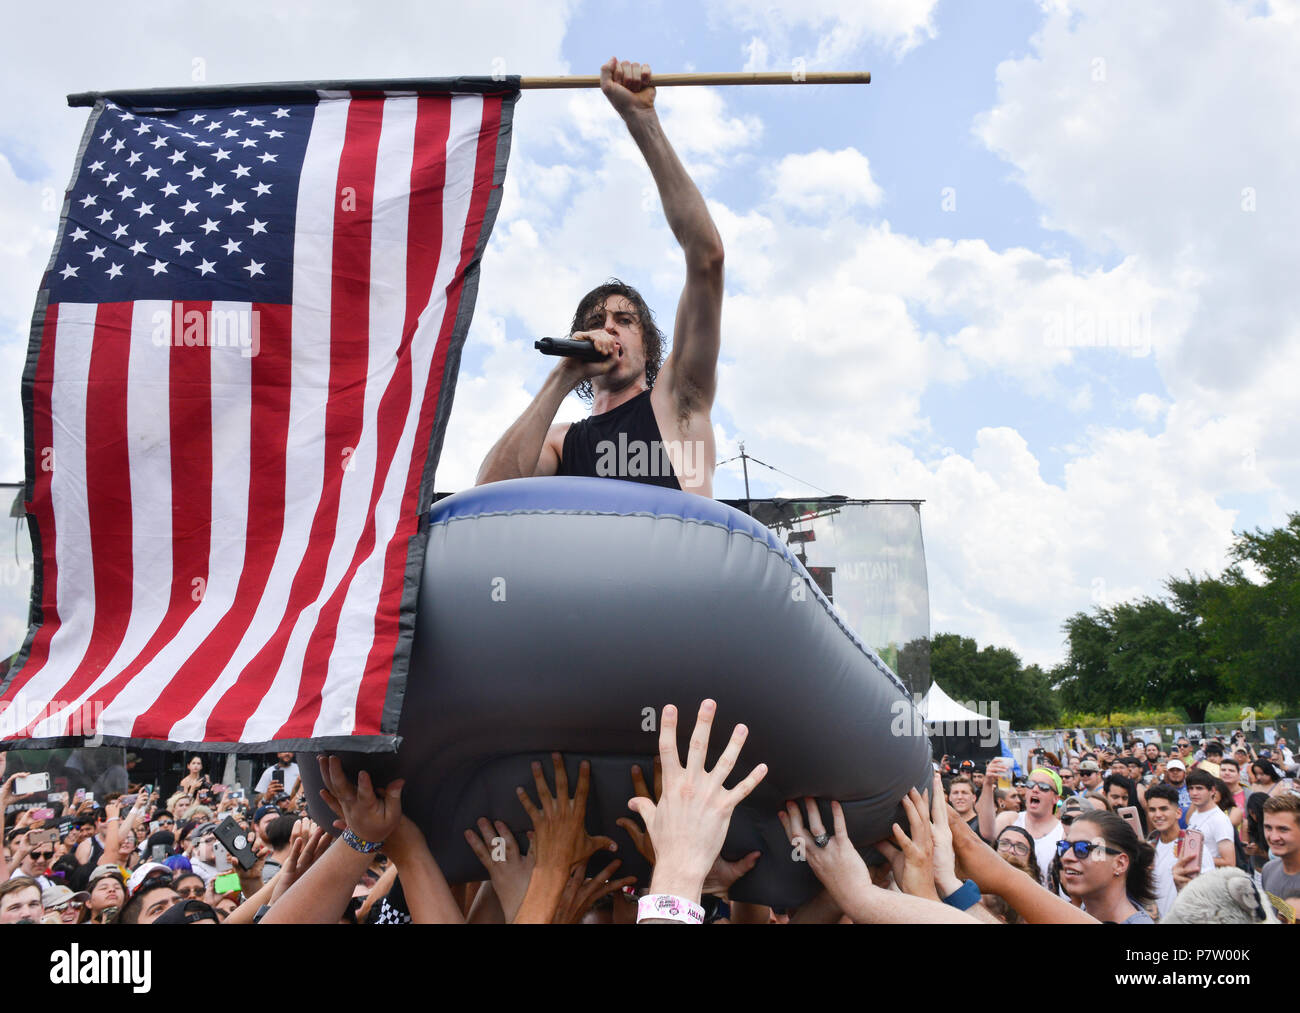 Jake Taylor of In Hears Wake sings while waving the American flag and being carried over the crowd in an inflatable boat during the Van's Warped Tour at the AT&T Center Saturday. Credit: Robin Jerstad/Alamy Live News - Stock Image